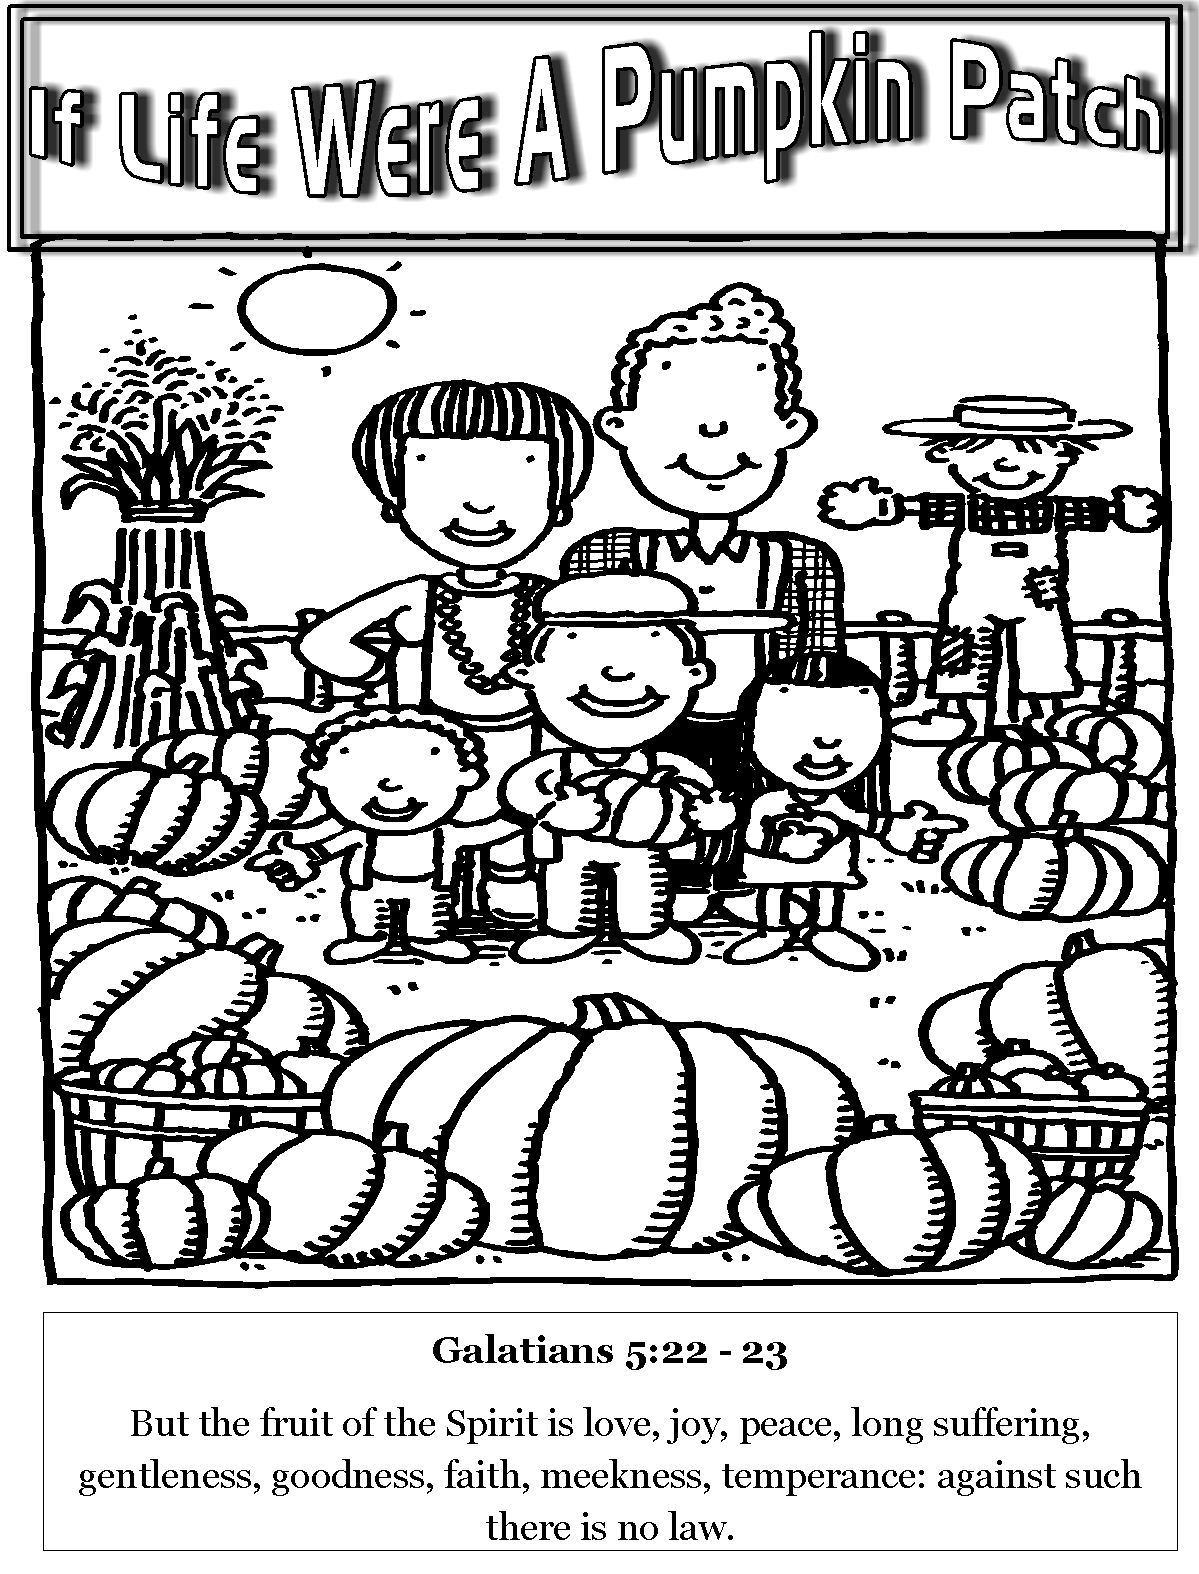 pumpkin patch coloring pages – lifewiththepeppers.com | 1574x1199